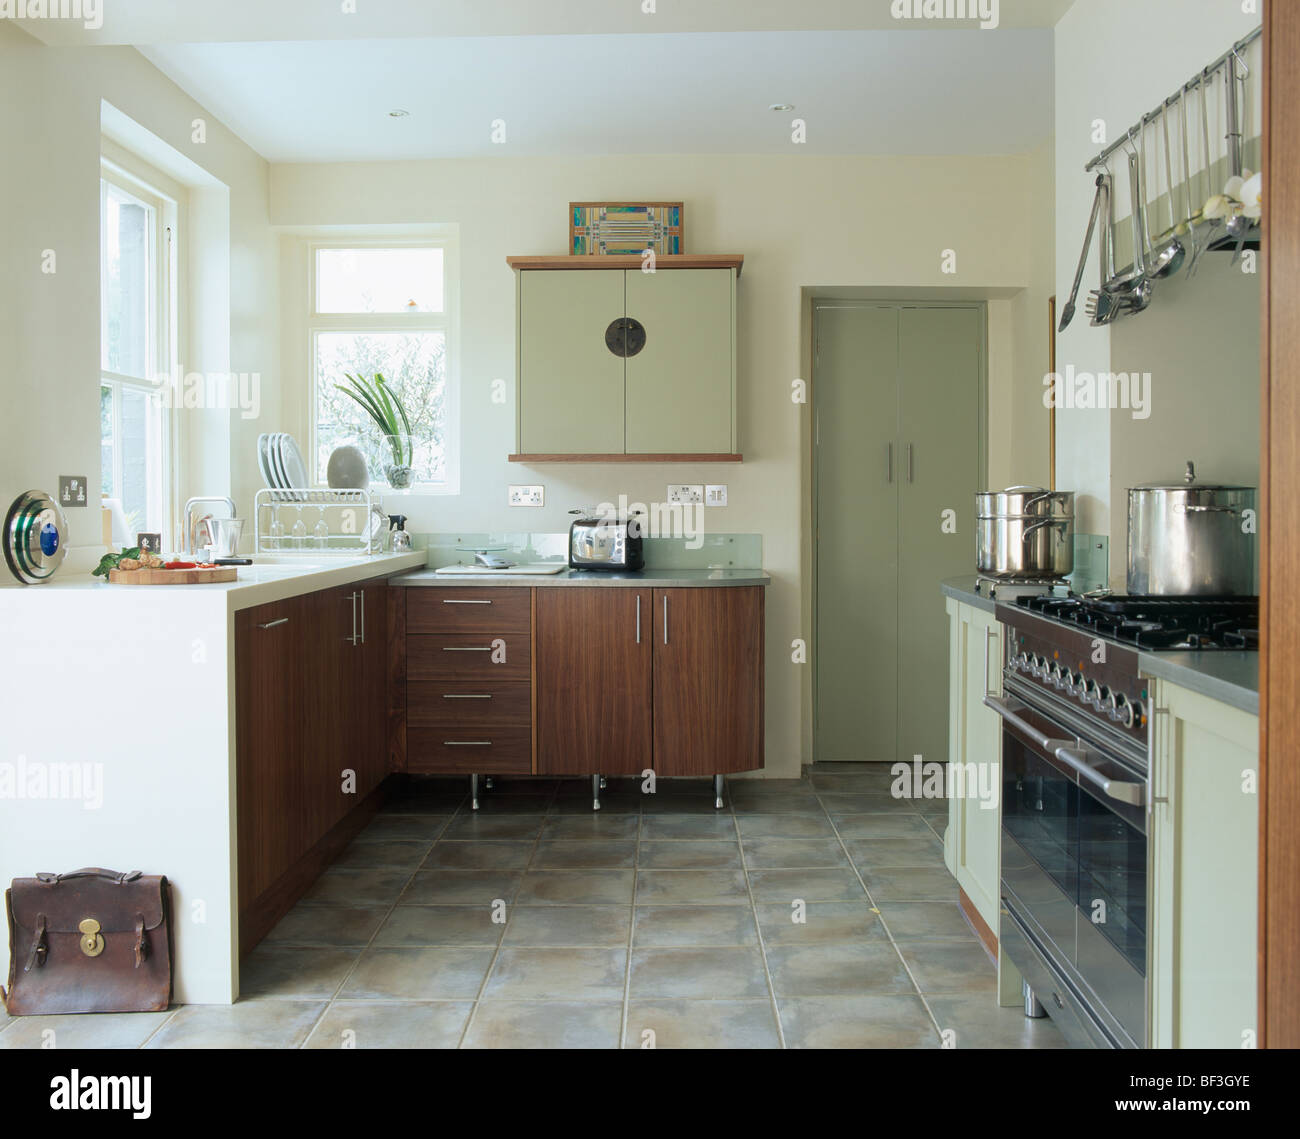 Slate For Kitchen Floor Kitchen Flooring Slate Stock Photos Kitchen Flooring Slate Stock